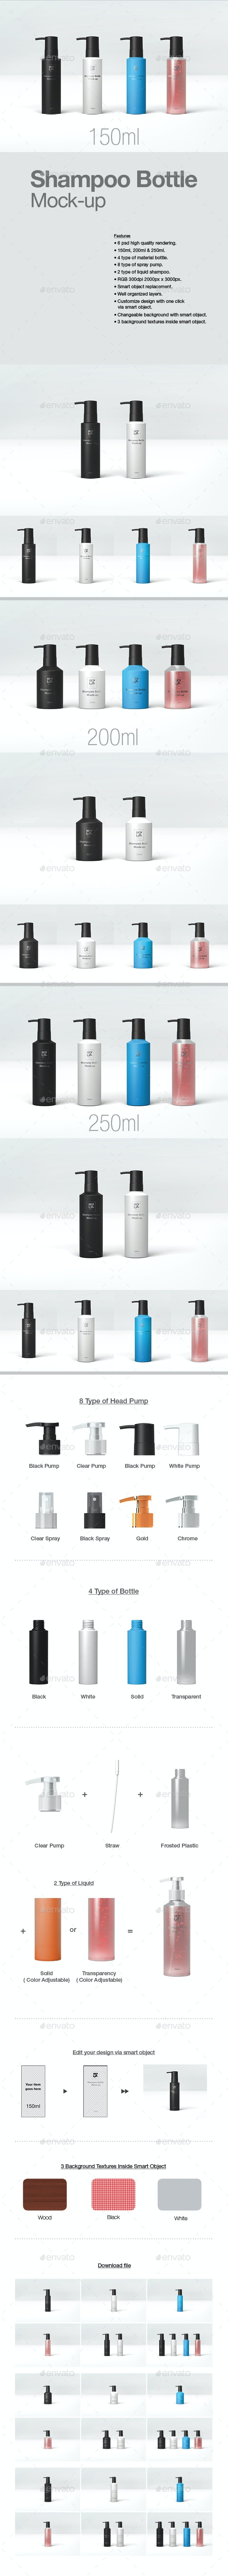 Shampoo Bottle Mock-up - Beauty Packaging